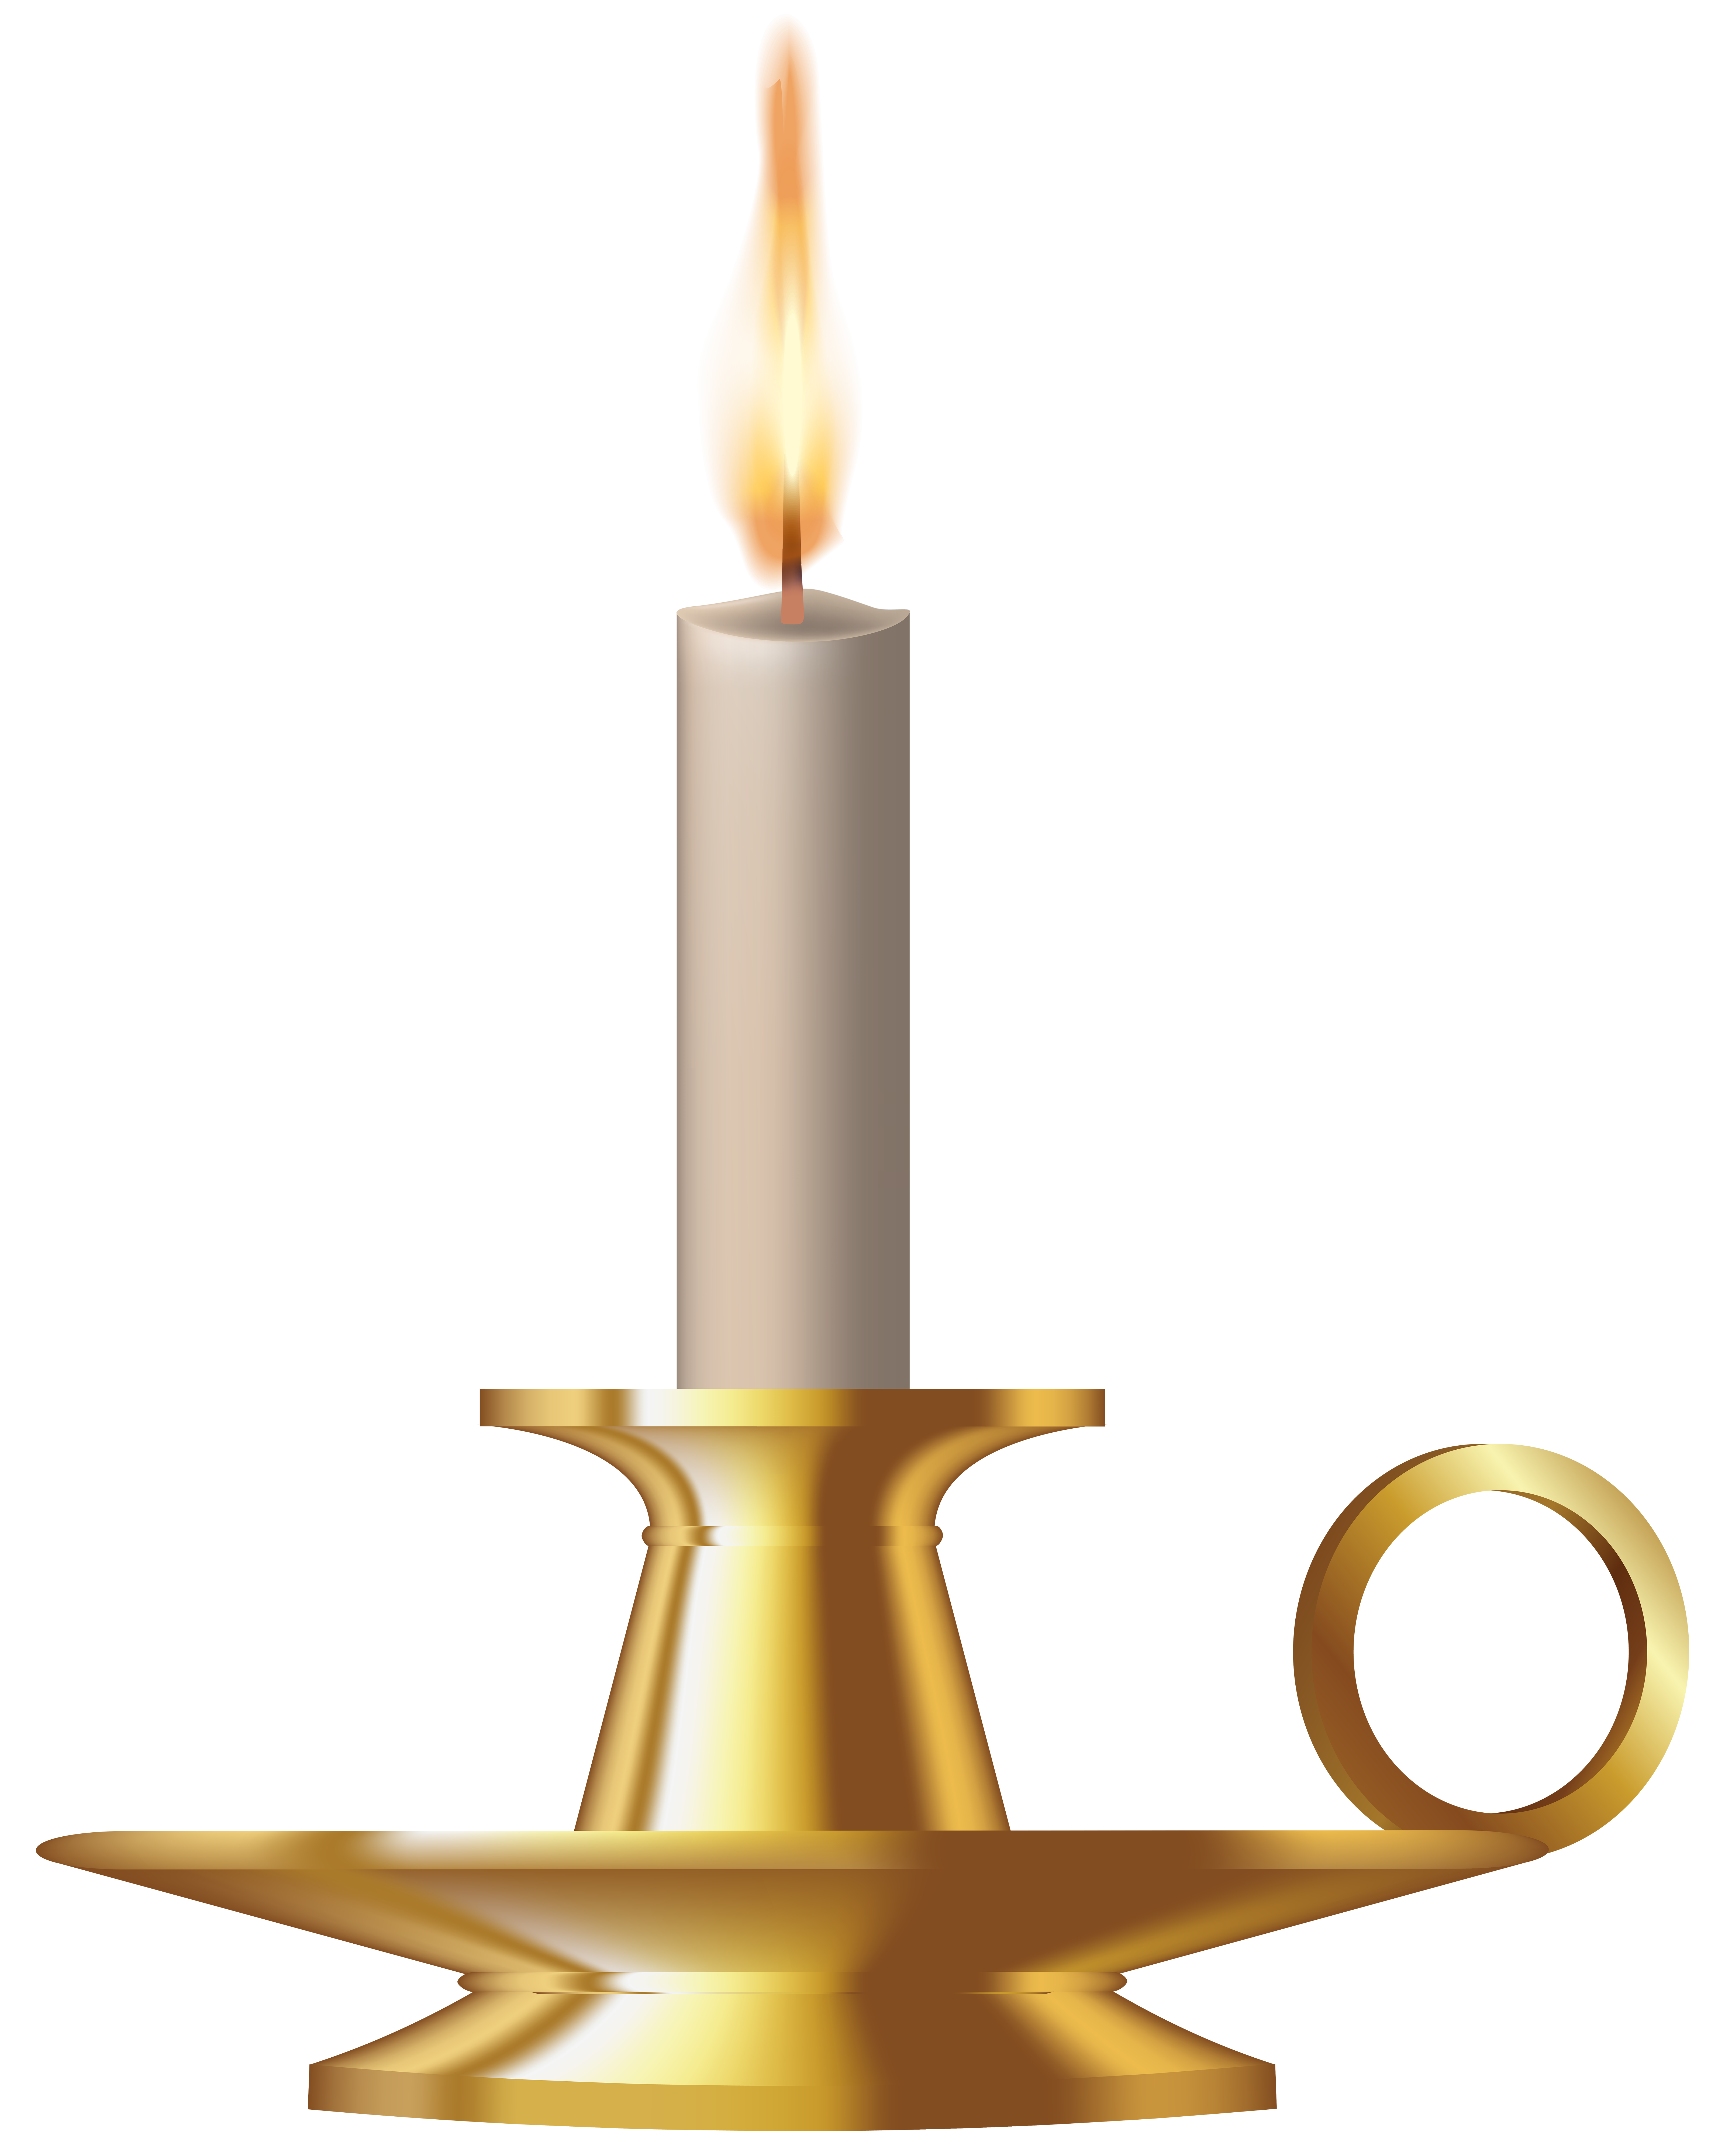 Candle clipart candlestick. Gold png clip art